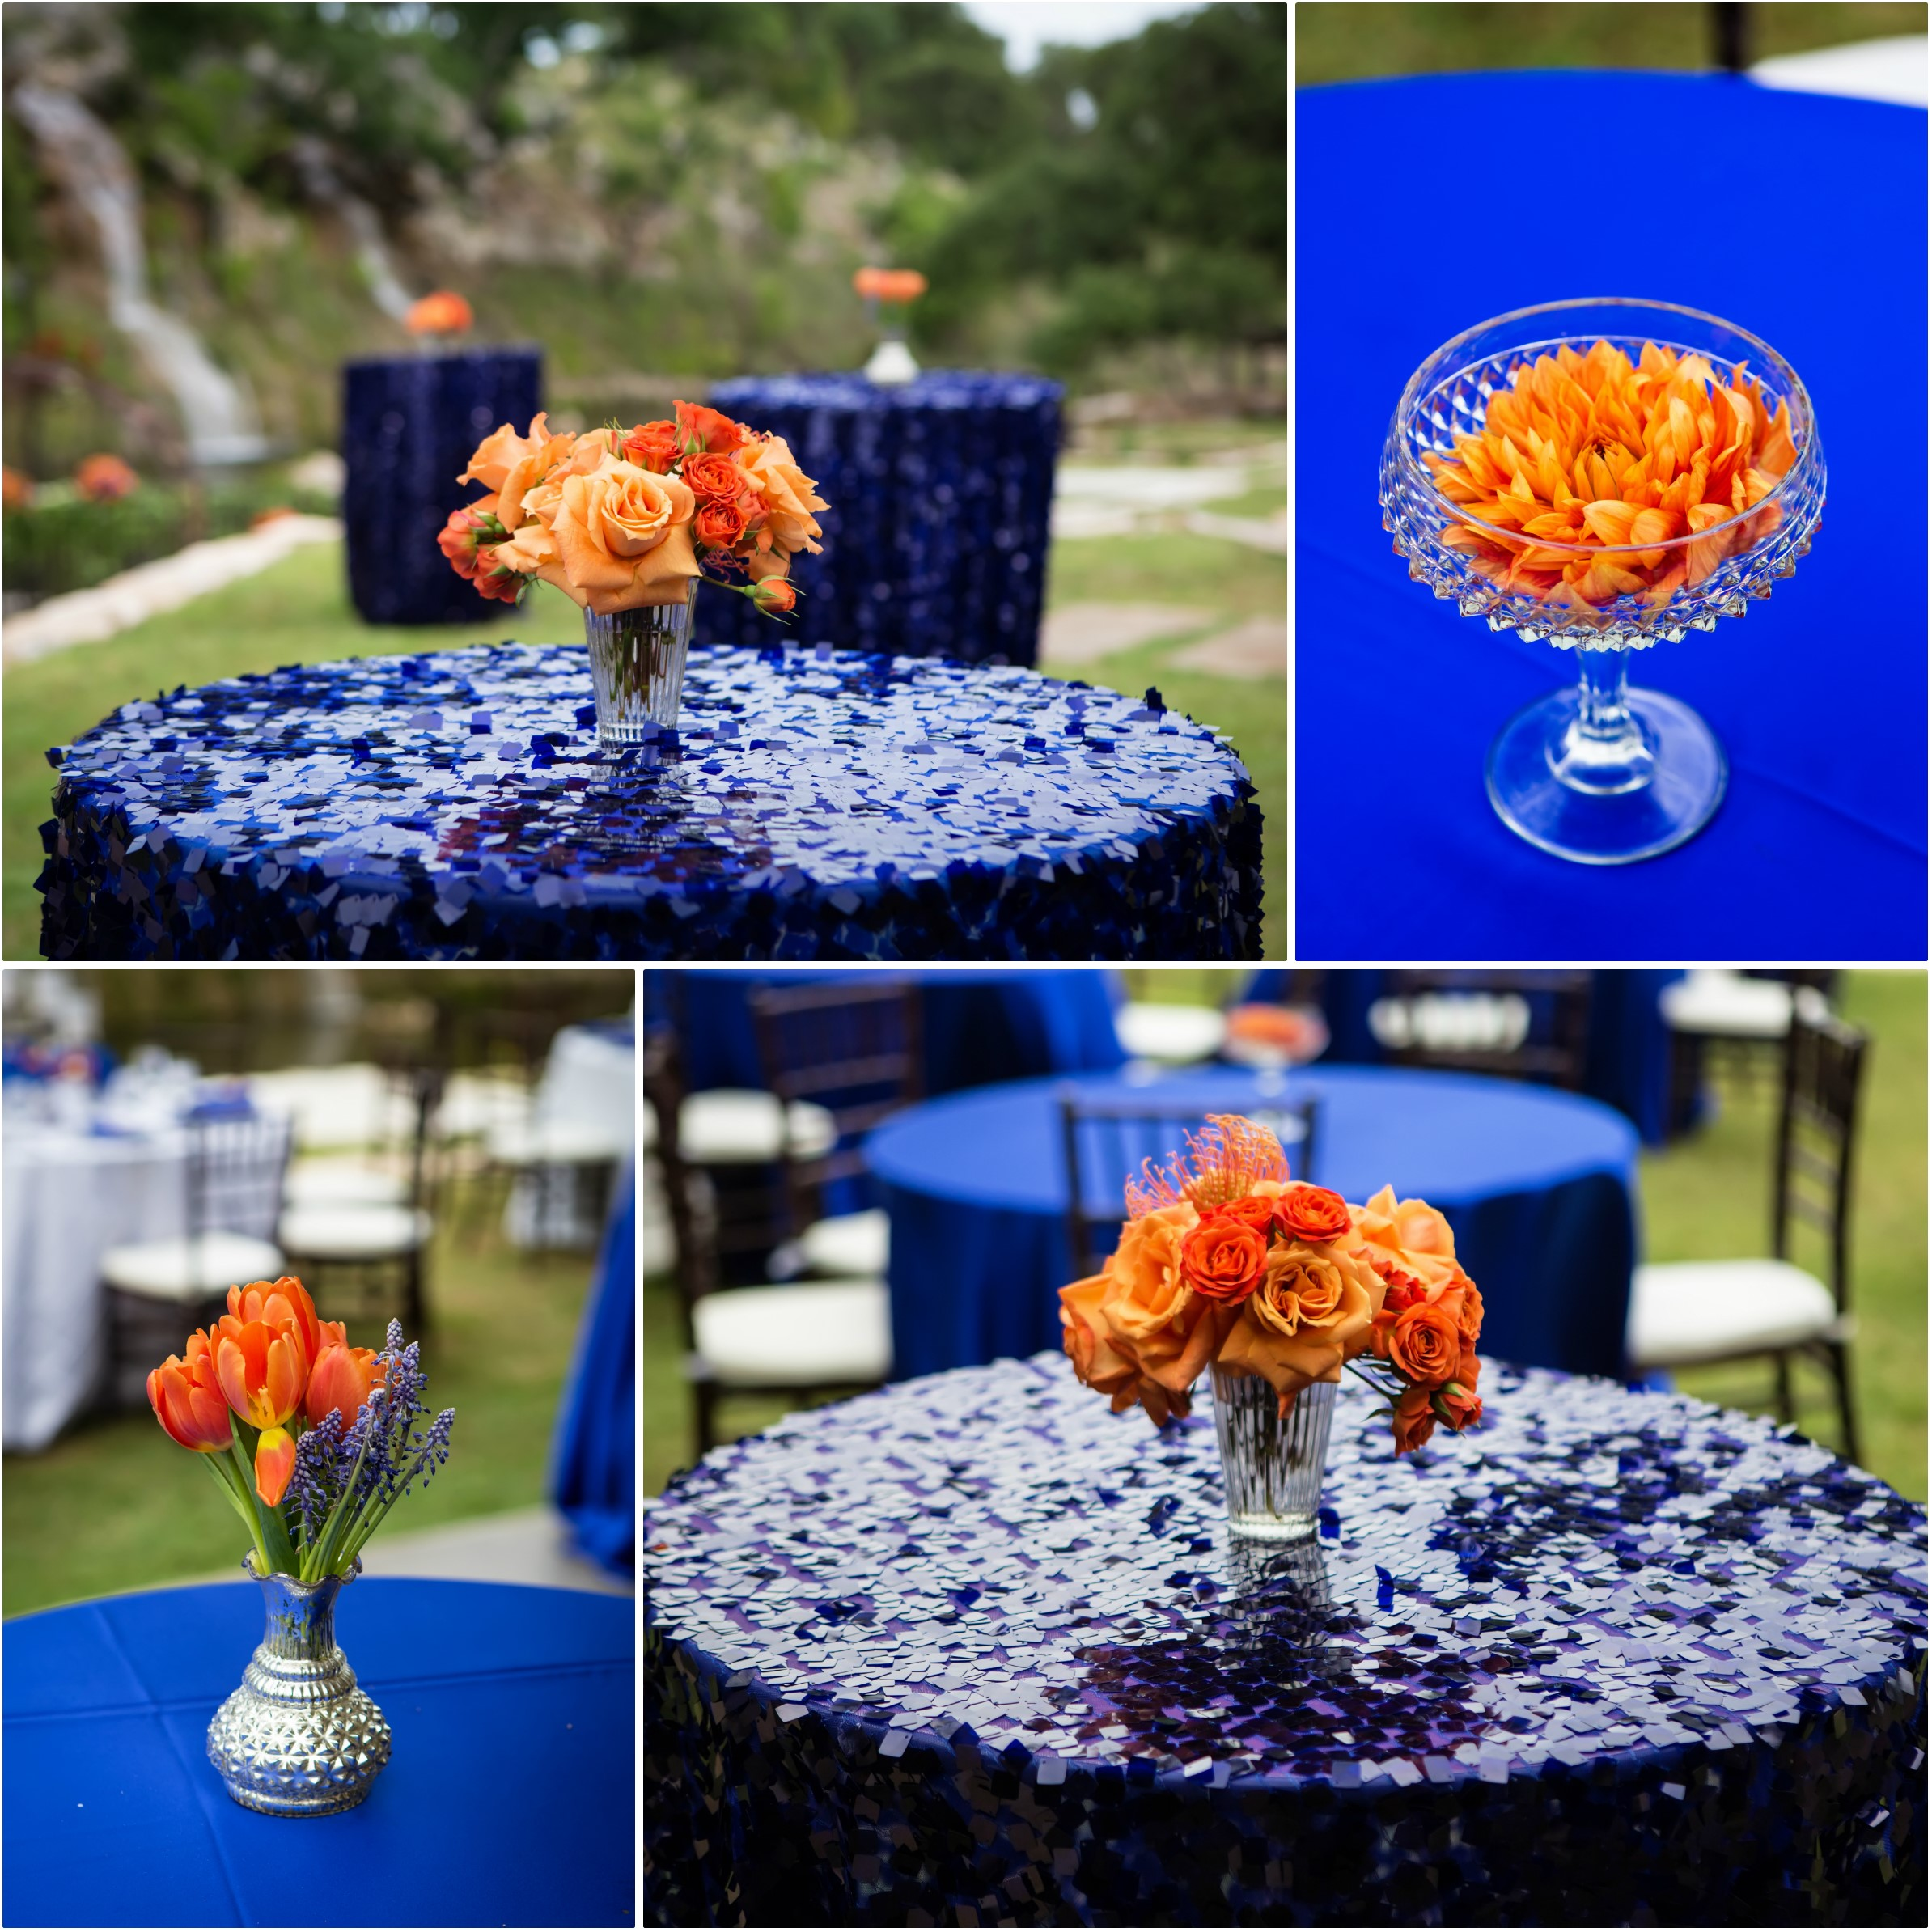 Sequined High Tables With Small Varied Orange Centerpieces Decorated The Patio